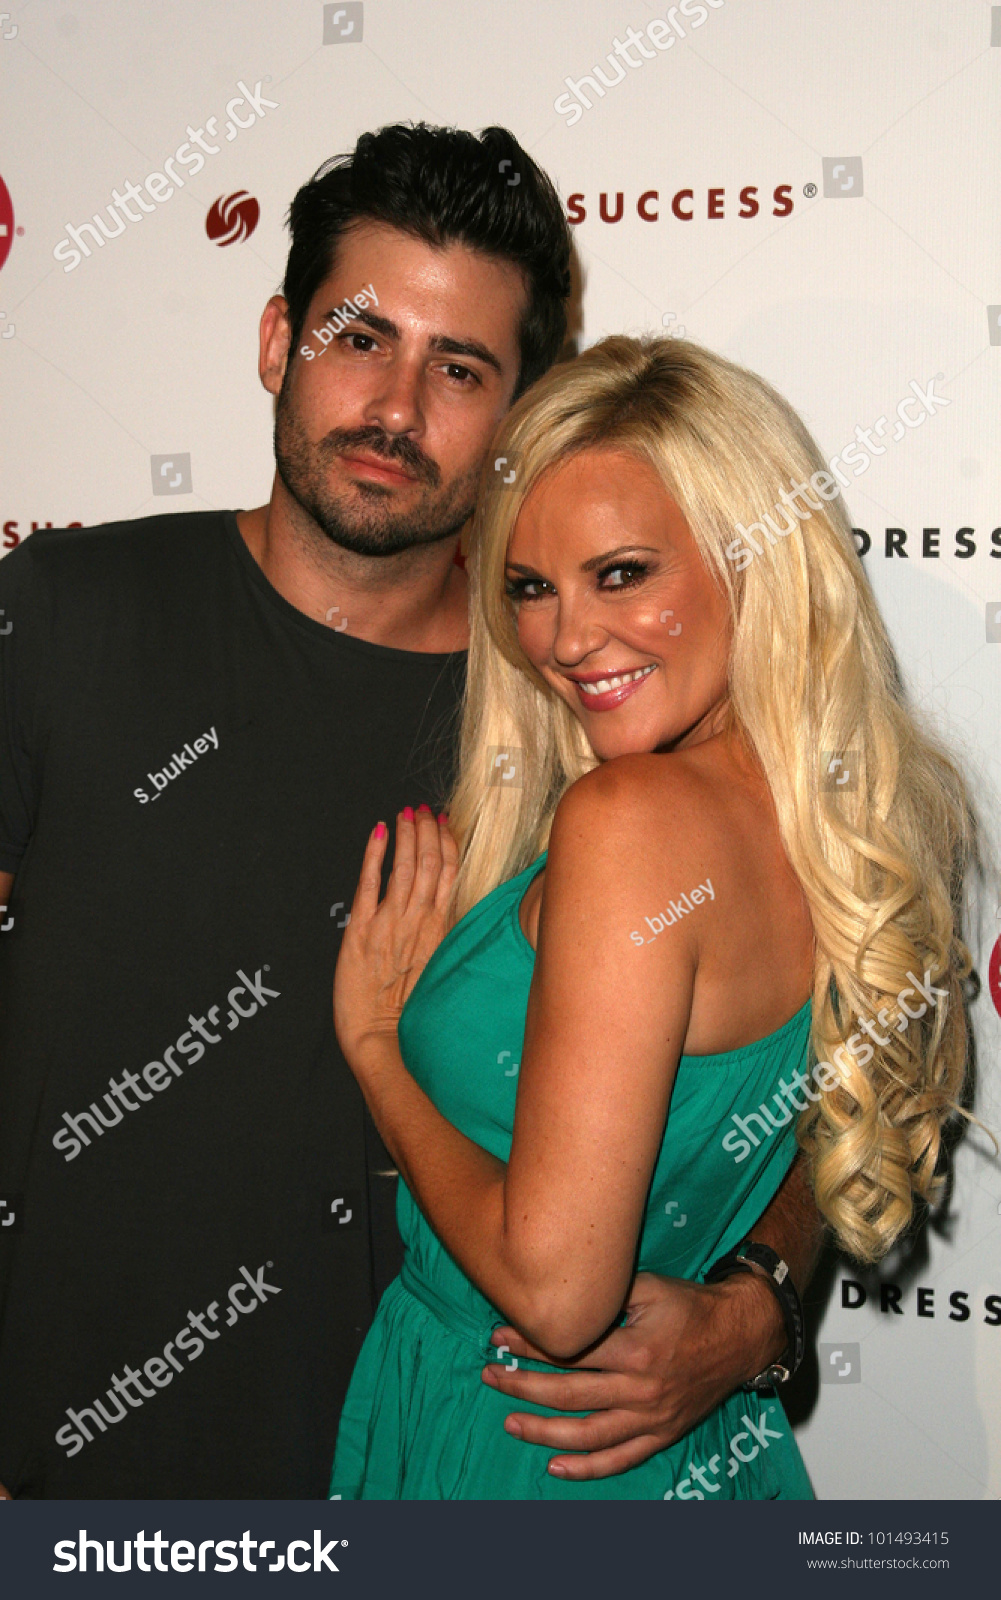 Nicholas Carpenter And Bridget Marquardt At The Second ... Nicholas Carpenter